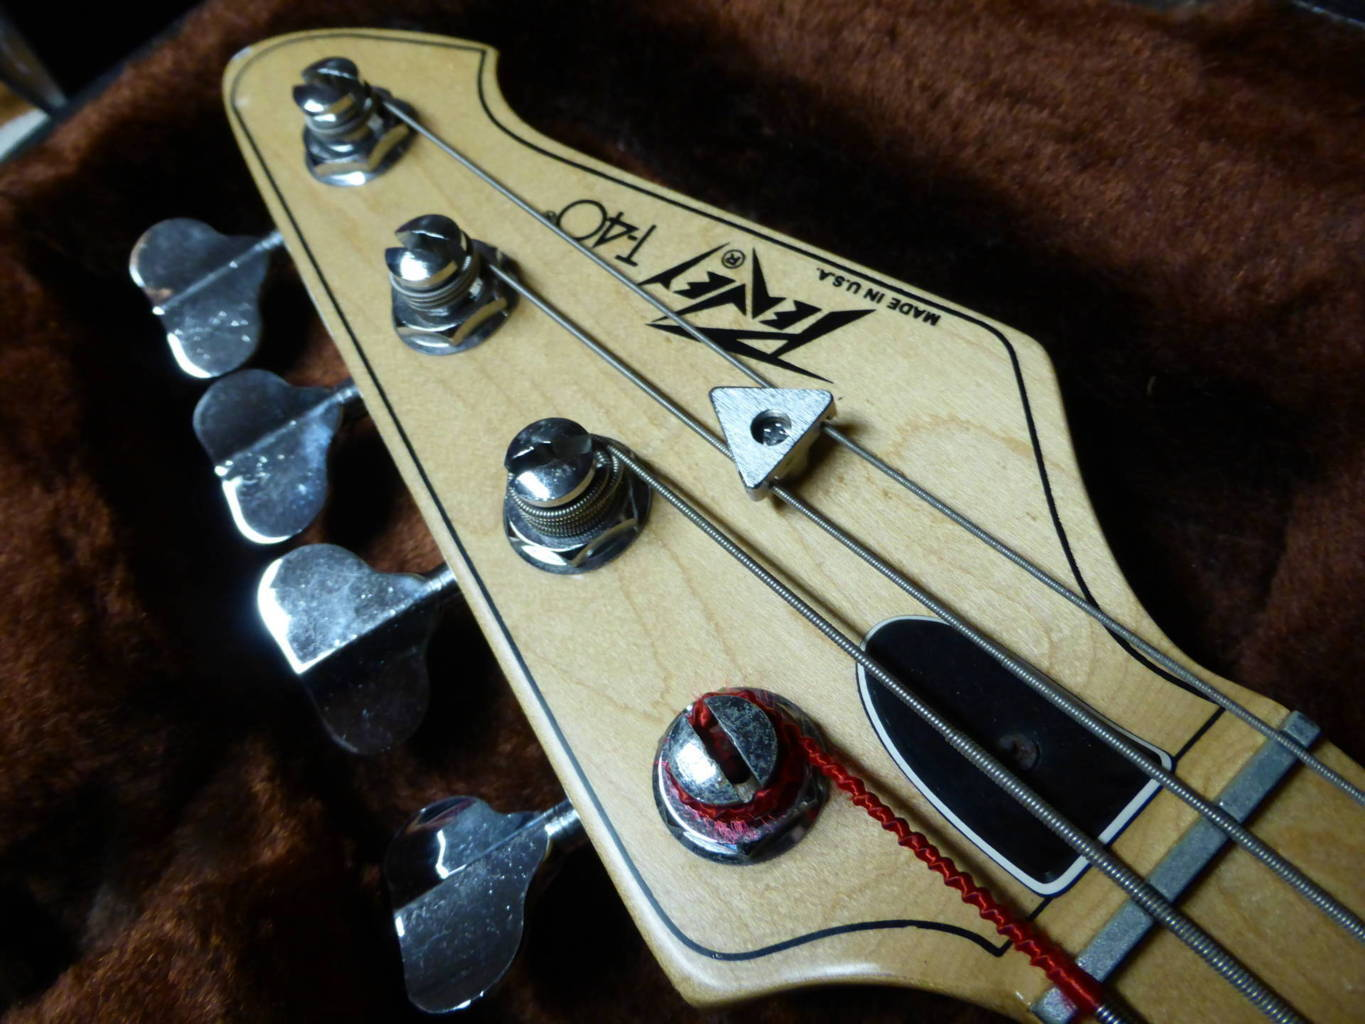 Bass guitar, vintage. Peavey T - 40, with original case